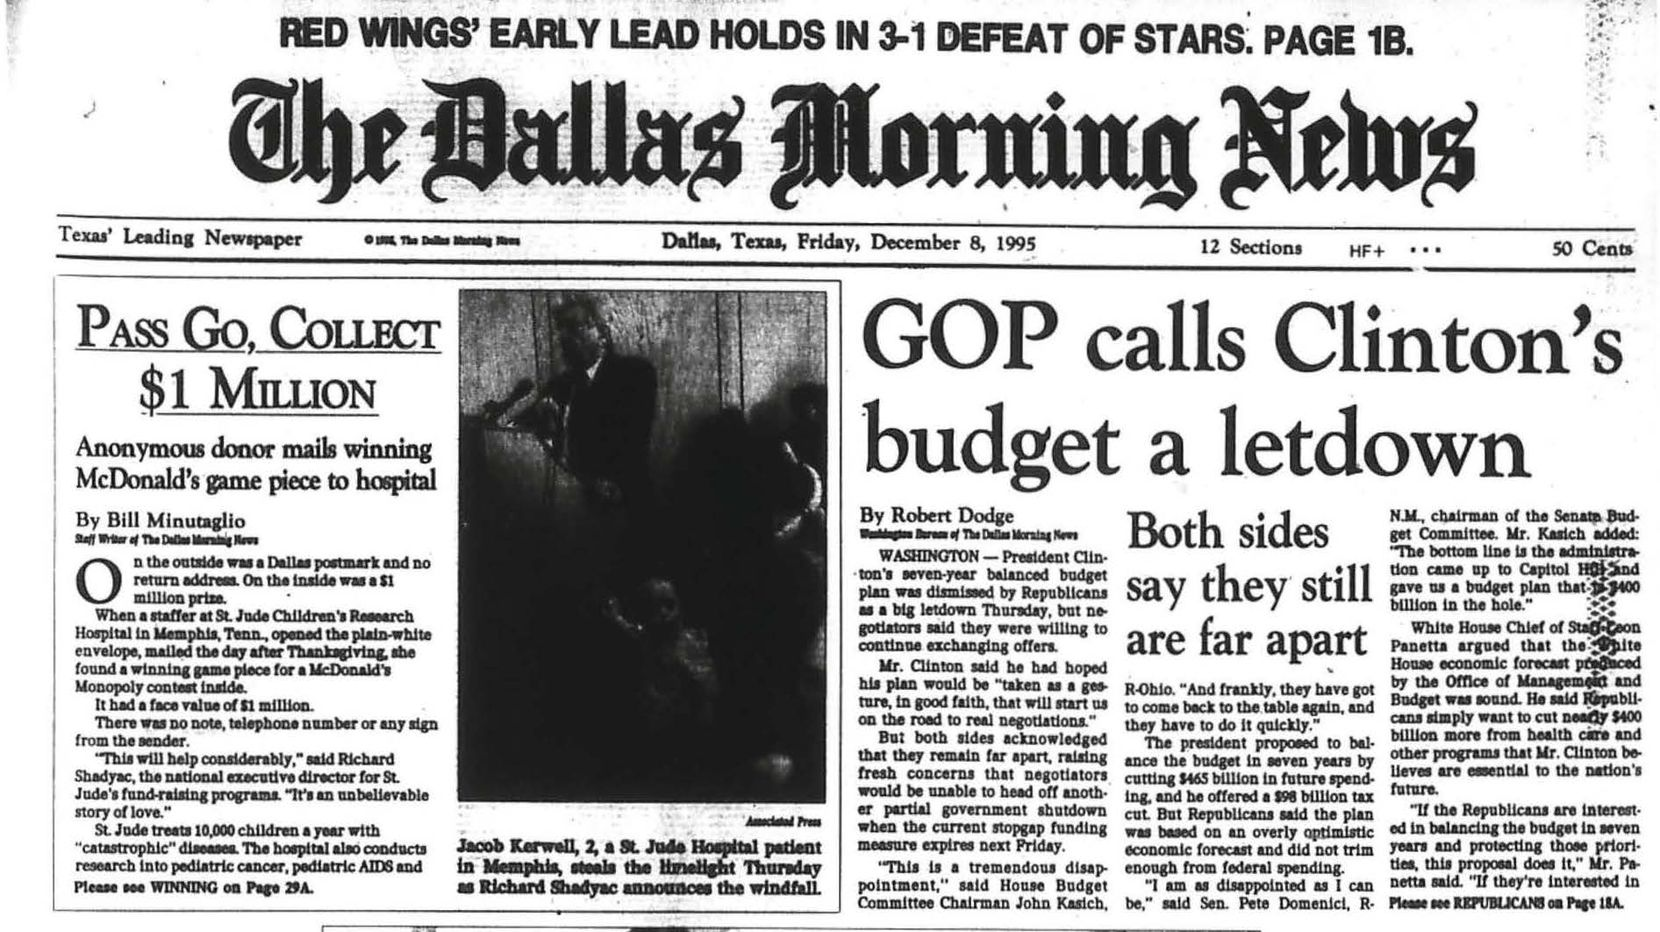 Snip of the front page on Dec. 8, 1995 with article about McDonald's winning game piece sent to St. Jude Hospital by Bill Minutaglio.